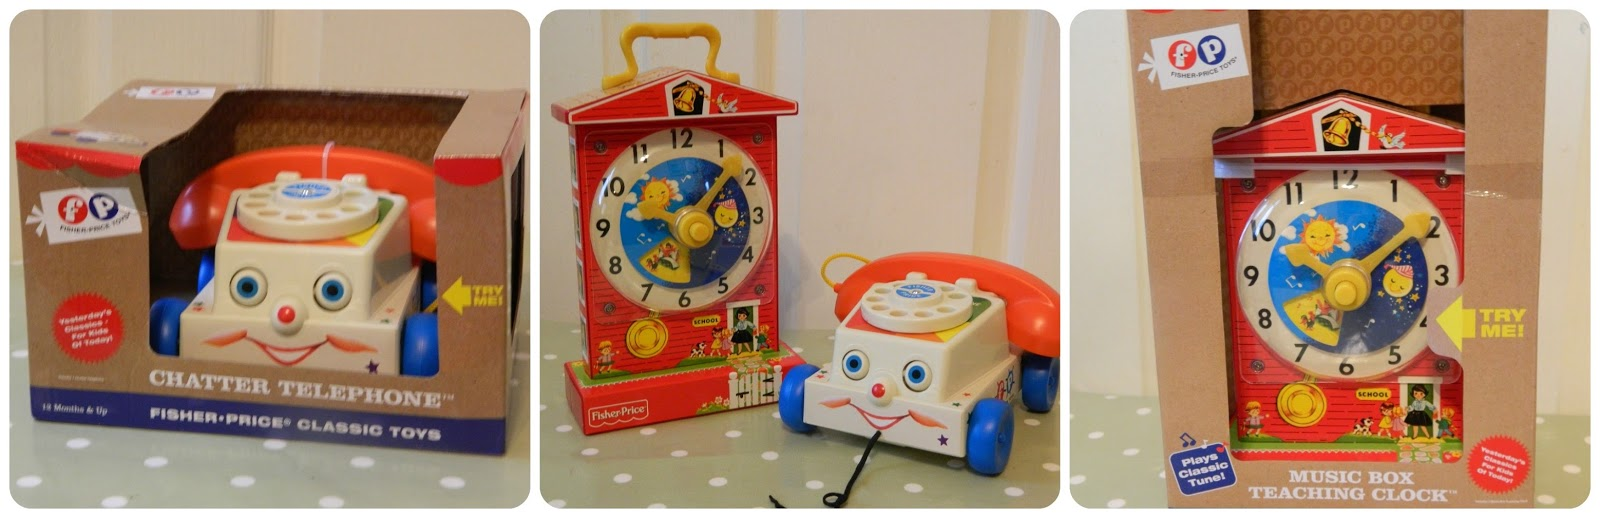 Fisher-Price Retro Classics Chatter Telephone and Music Box Teaching Clock